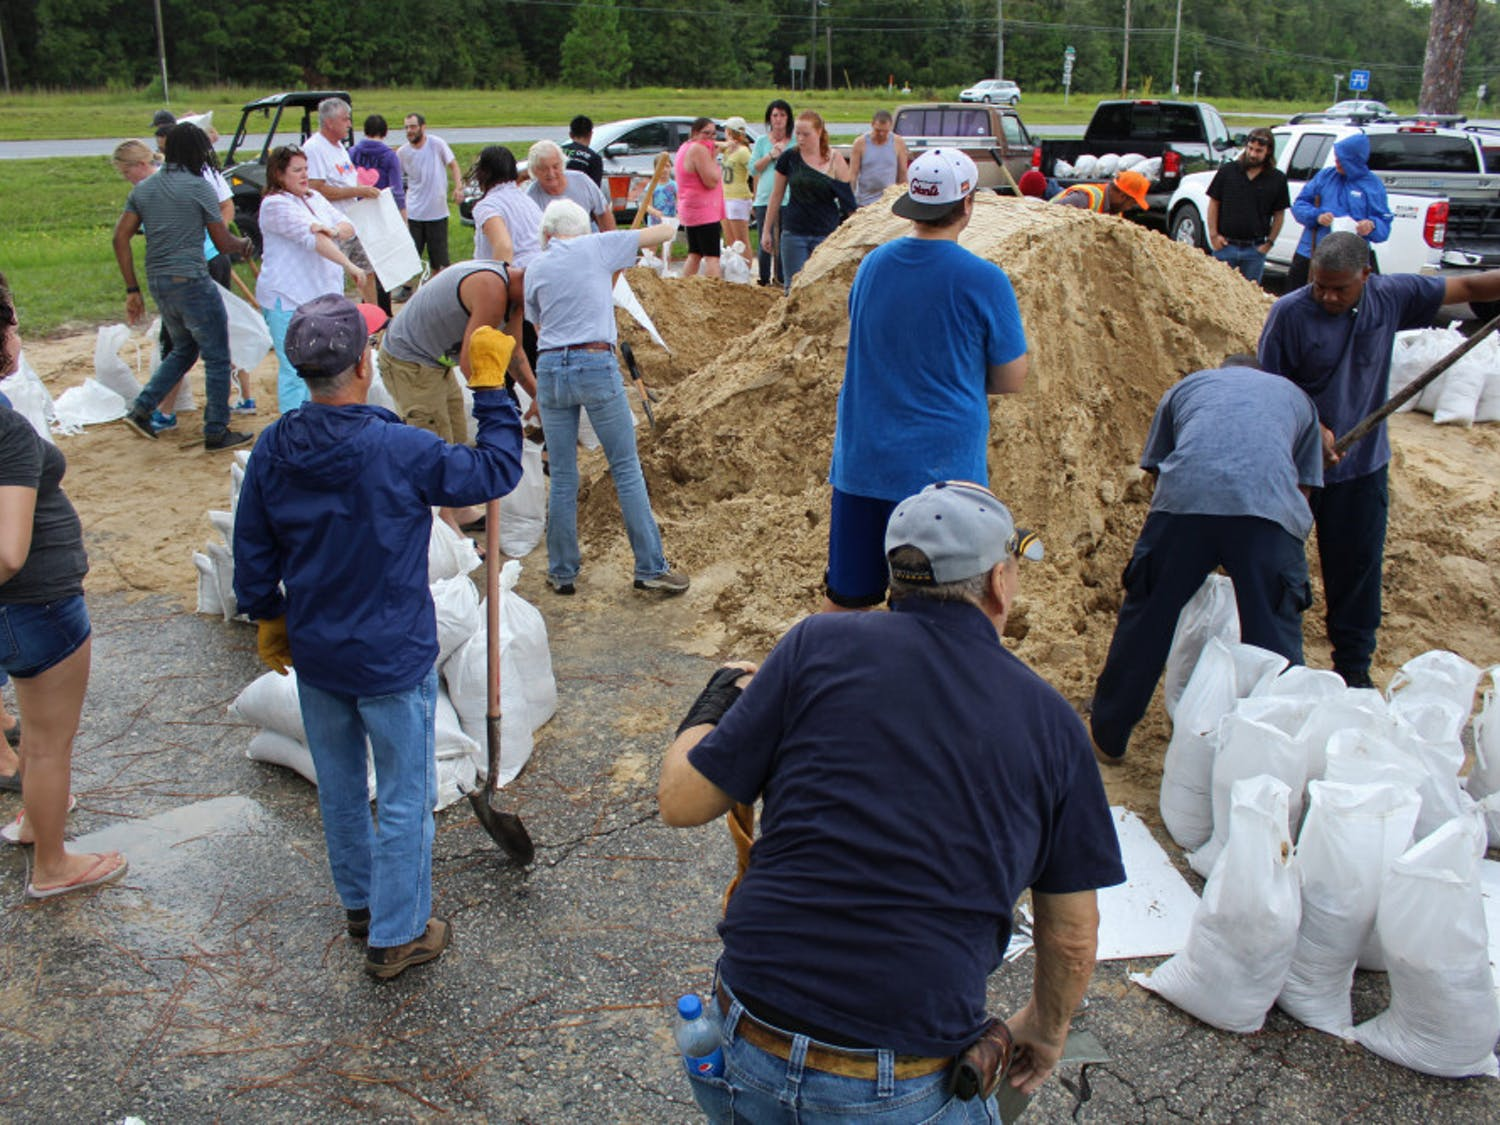 Alachua County residents work to fill sandbags to prepare for Hurricane Irma. Irma is currently ranked as a Category 5 hurricane and projections see it heading toward Florida.